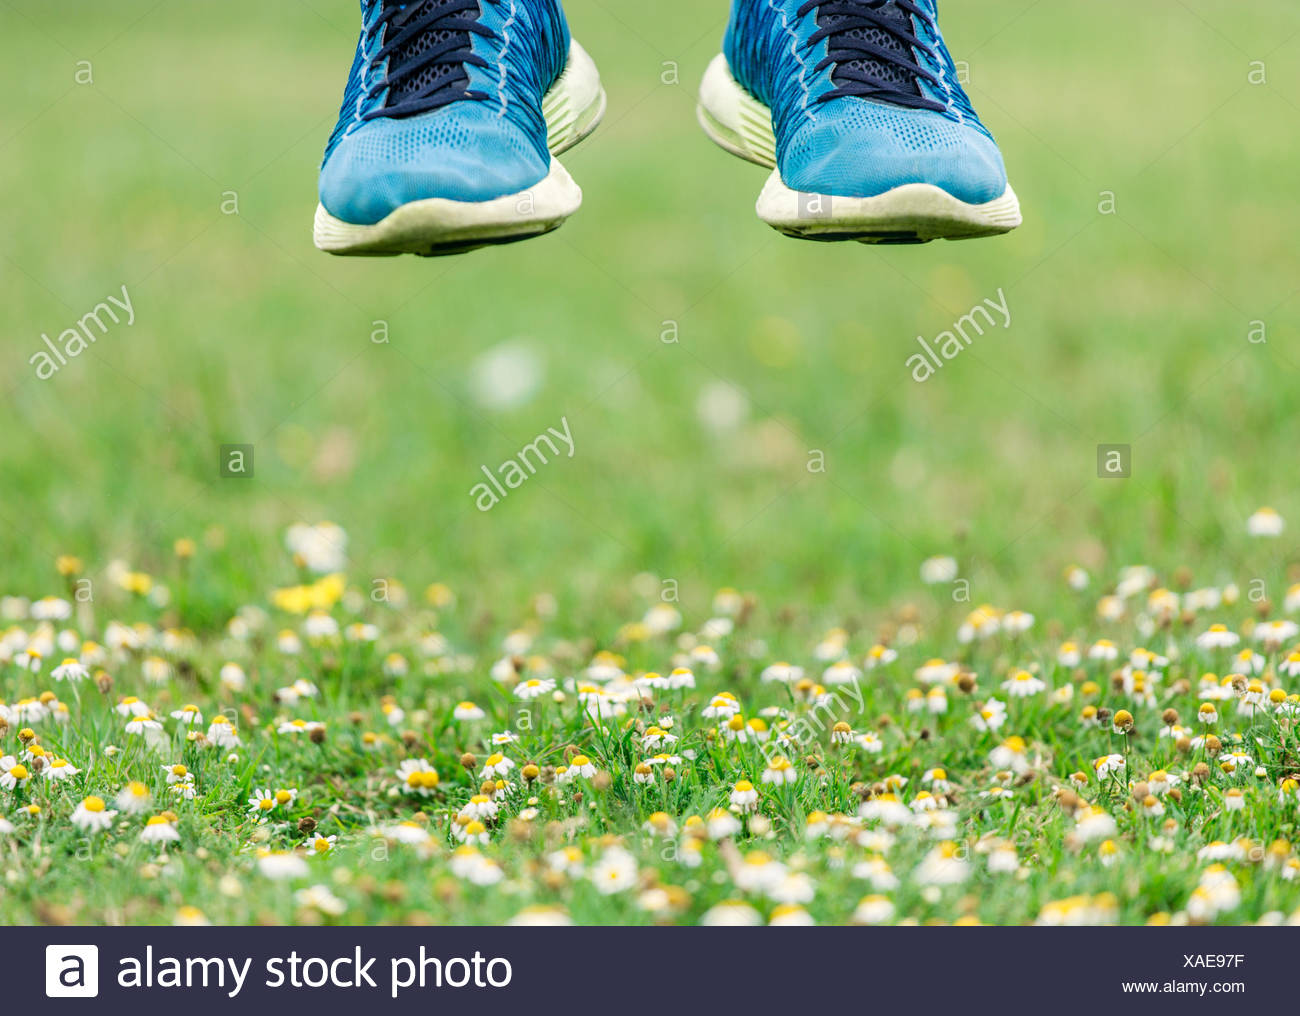 Jumping feet in trainers, mid-air - Stock Image